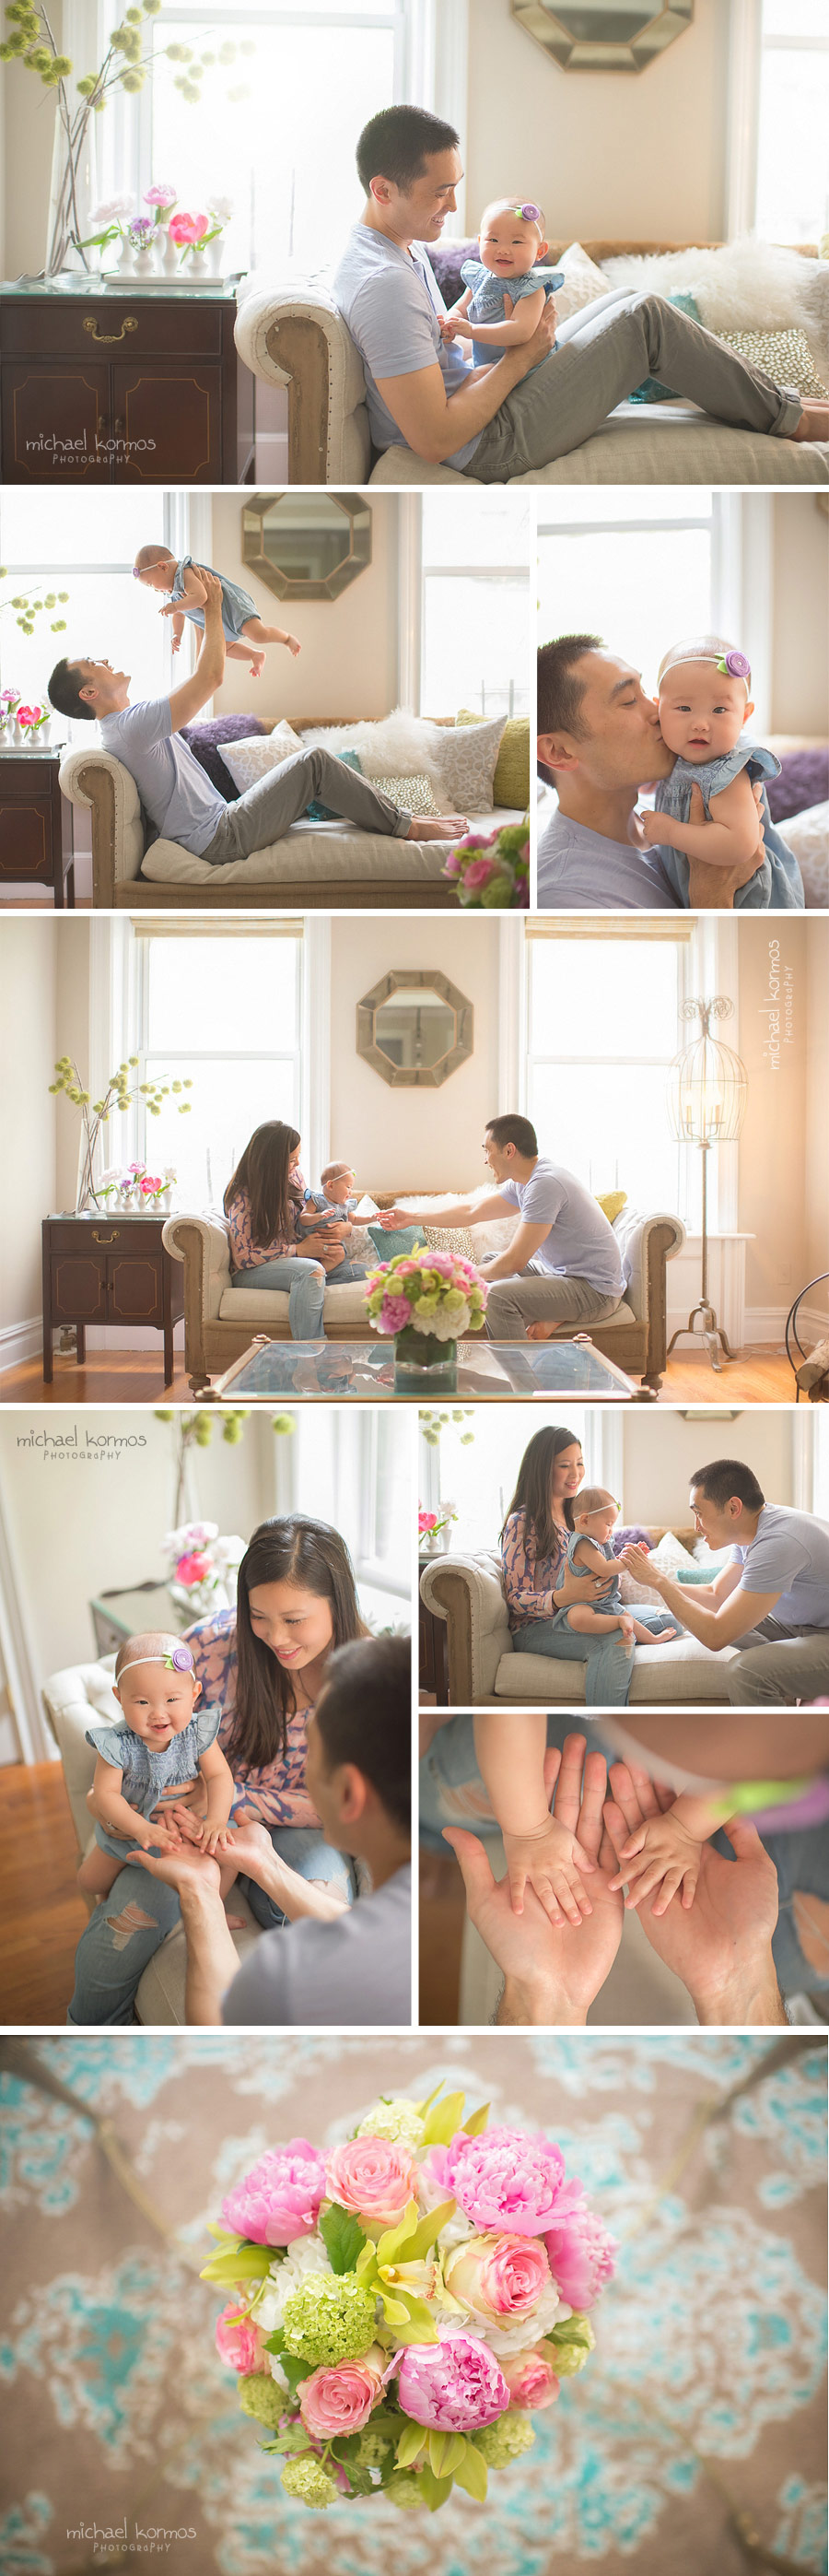 best lifestyle baby photography studio nyc